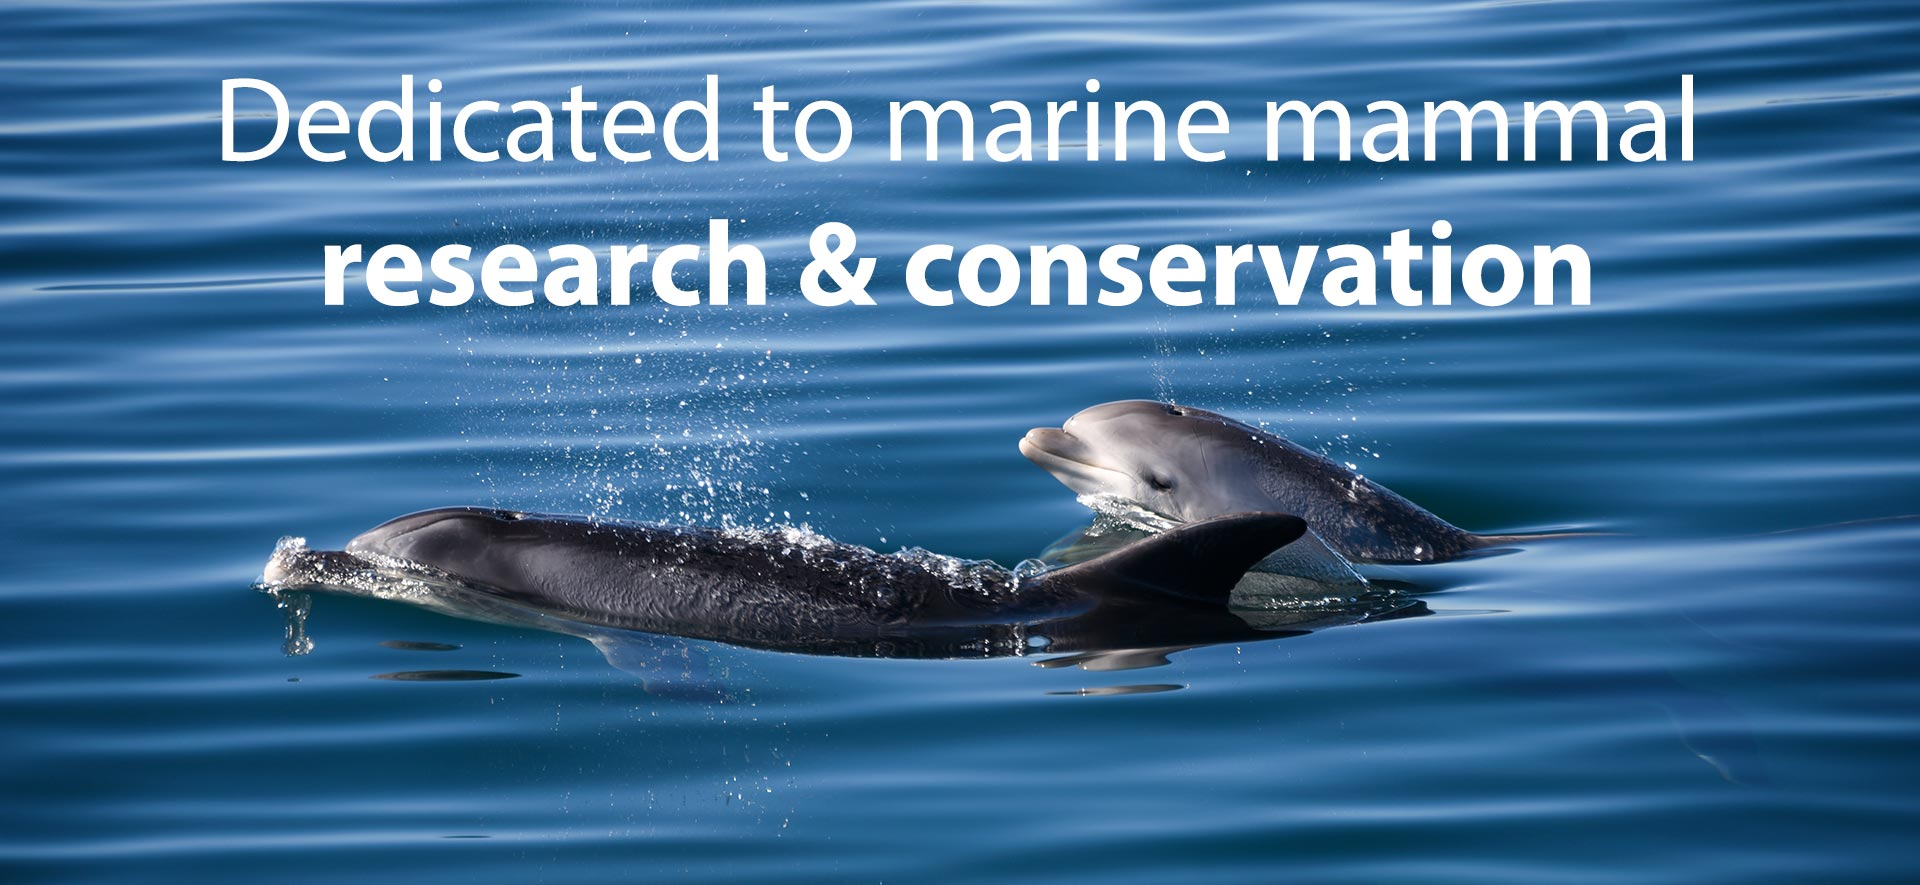 Marine research and education